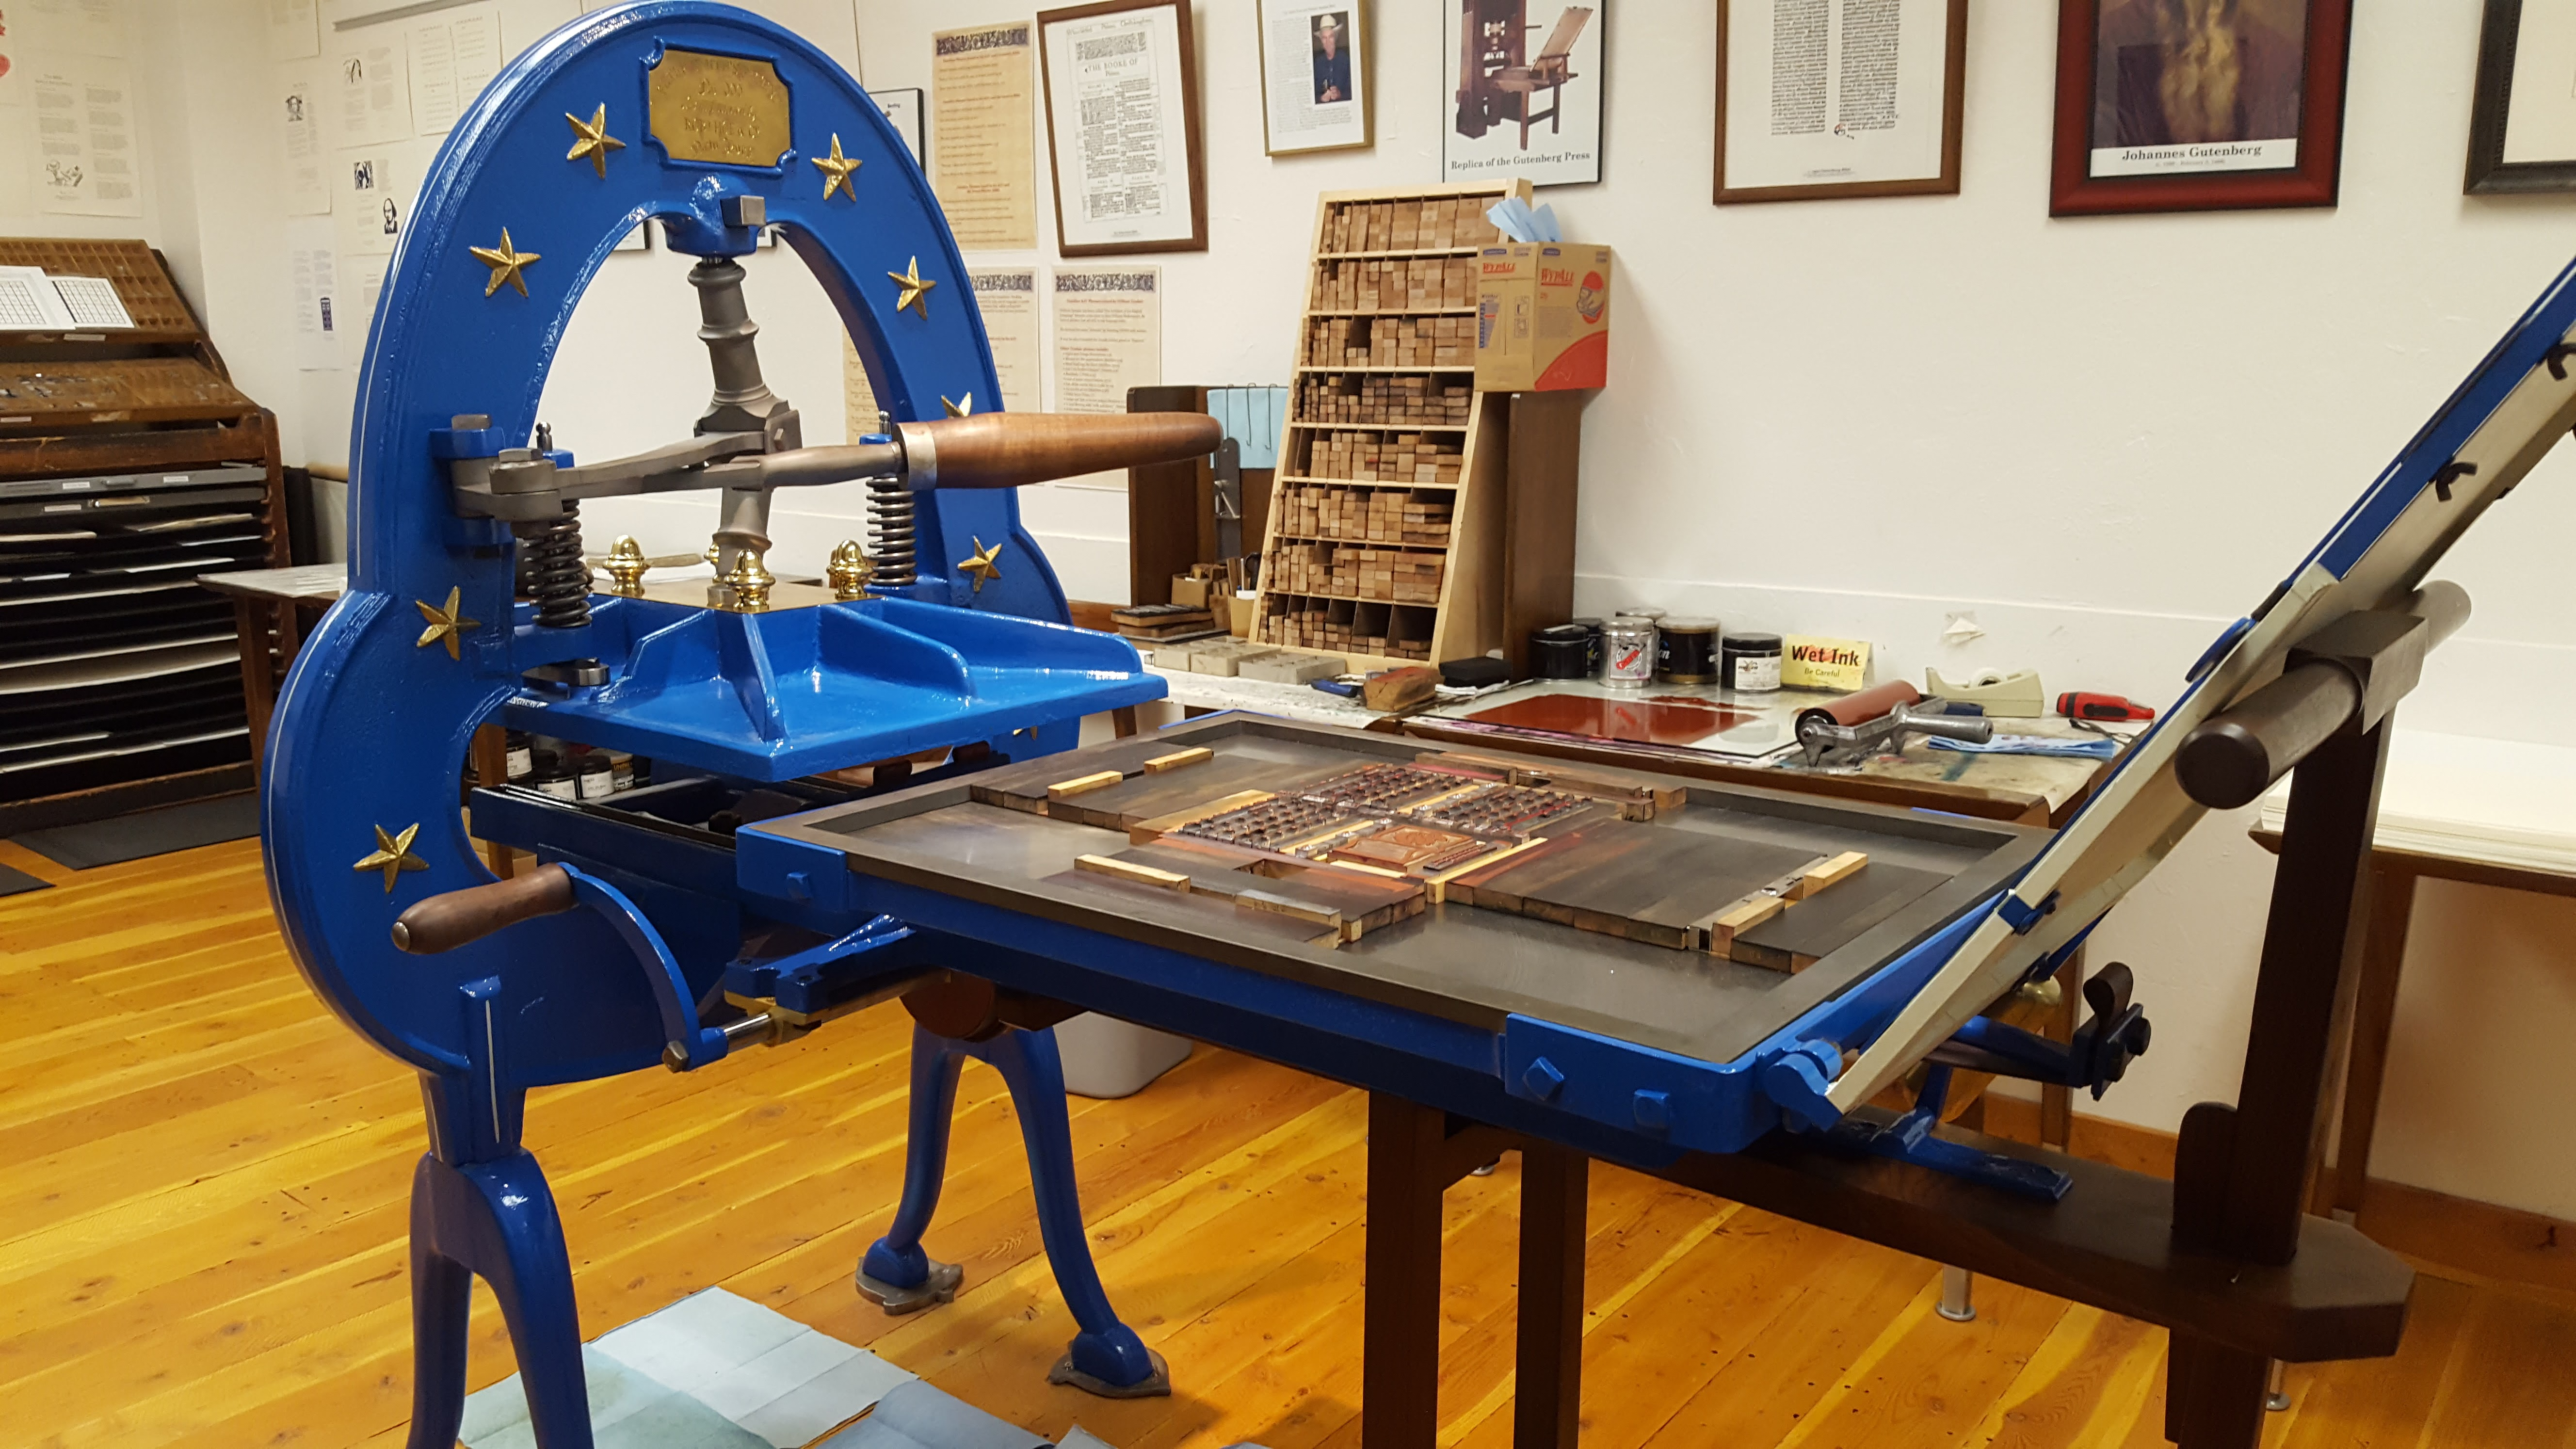 Open Printing Press Day